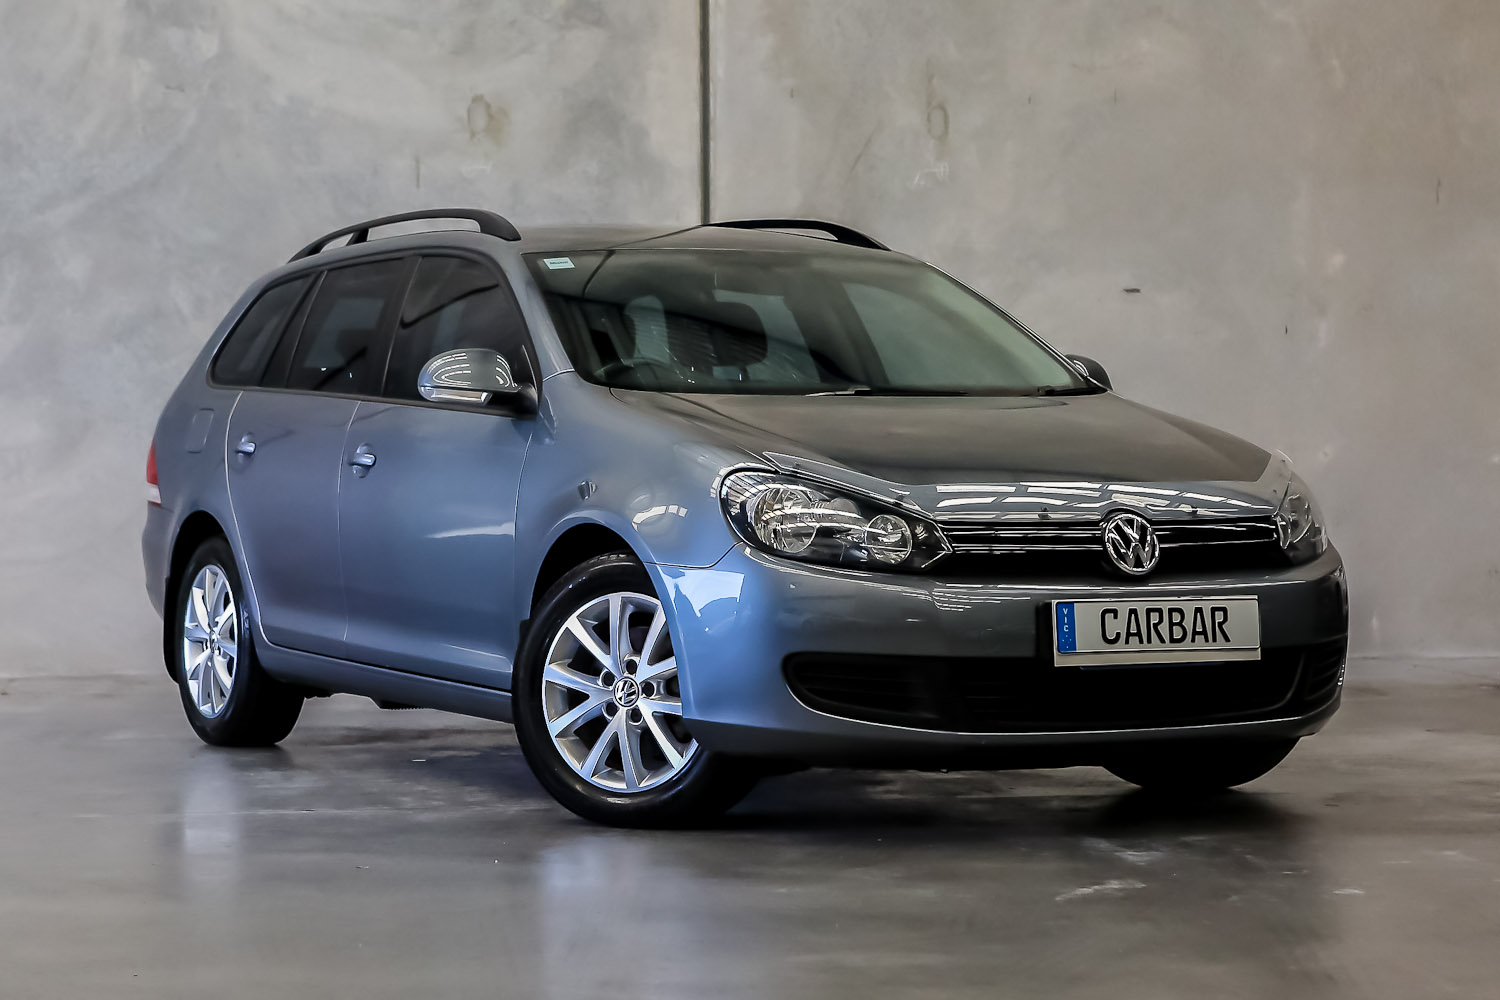 Carbar-2011-Volkswagen-Golf-399820180605-110221.jpg